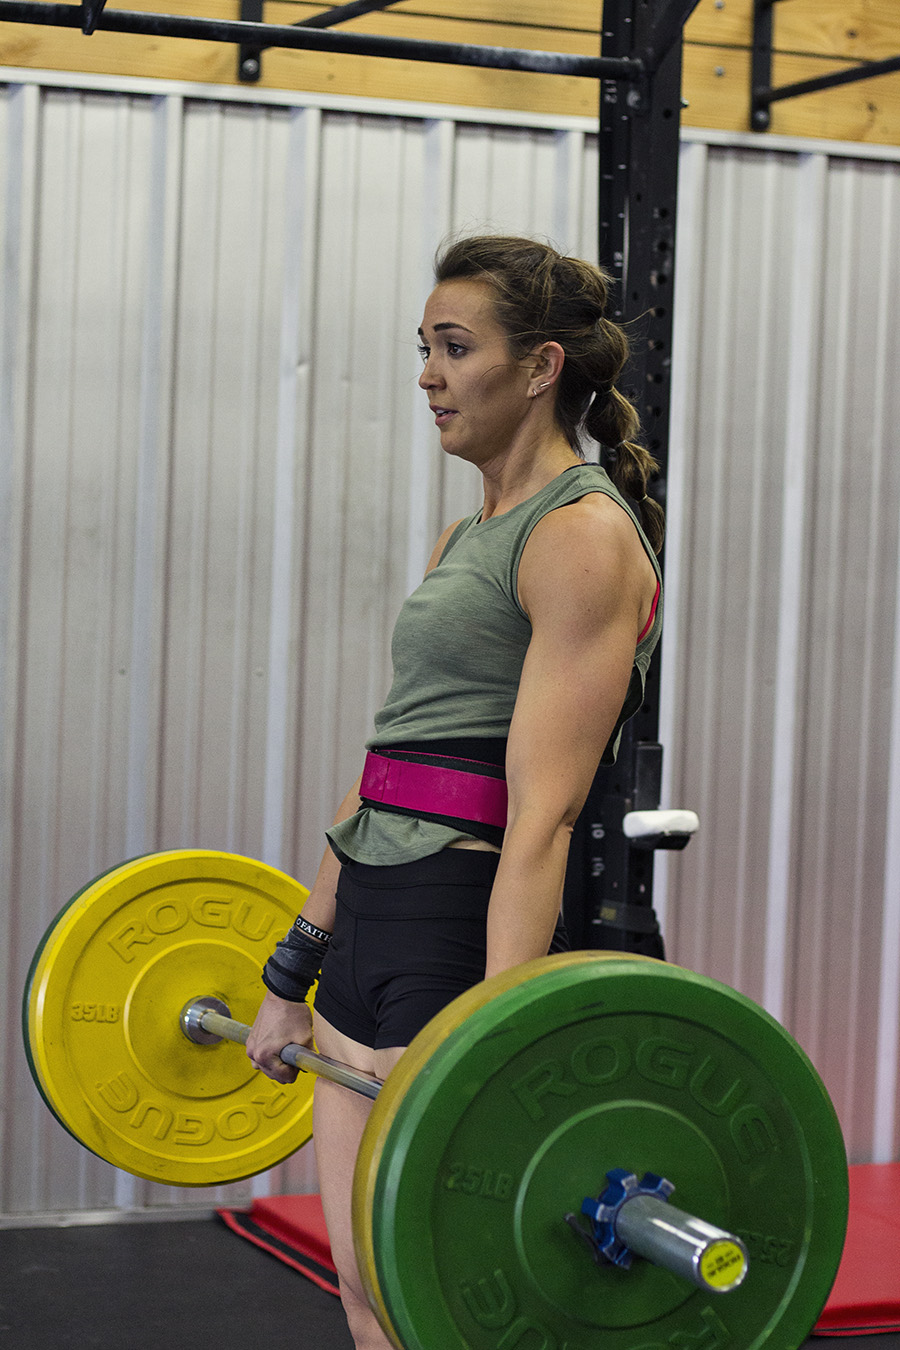 Amanda Evans    Co-Owner: Lead Trainer    CrossFit Level 2: USA-Weightlifting Sports Performance: CrossFit Rowing: CrossFit Mobility: NCI-Level 1 Nutritional Coach: BA Exercise Science